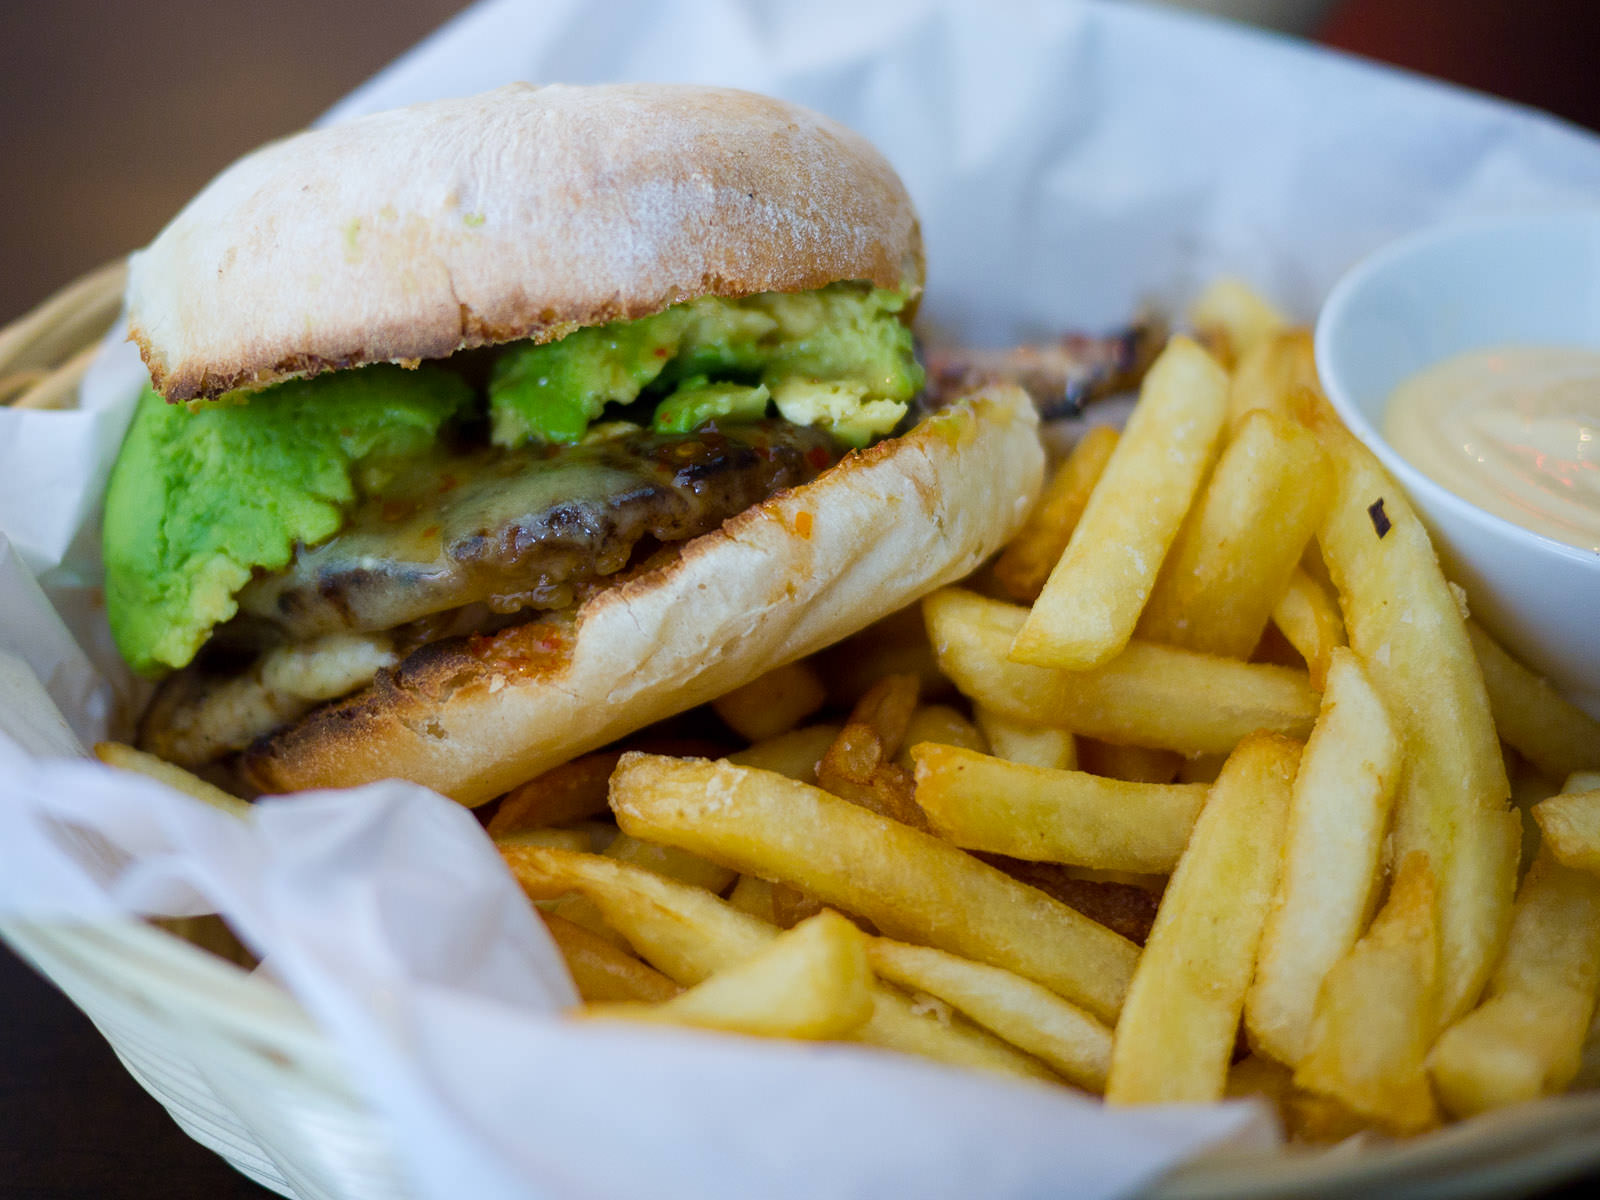 Hawaiian burger with fries